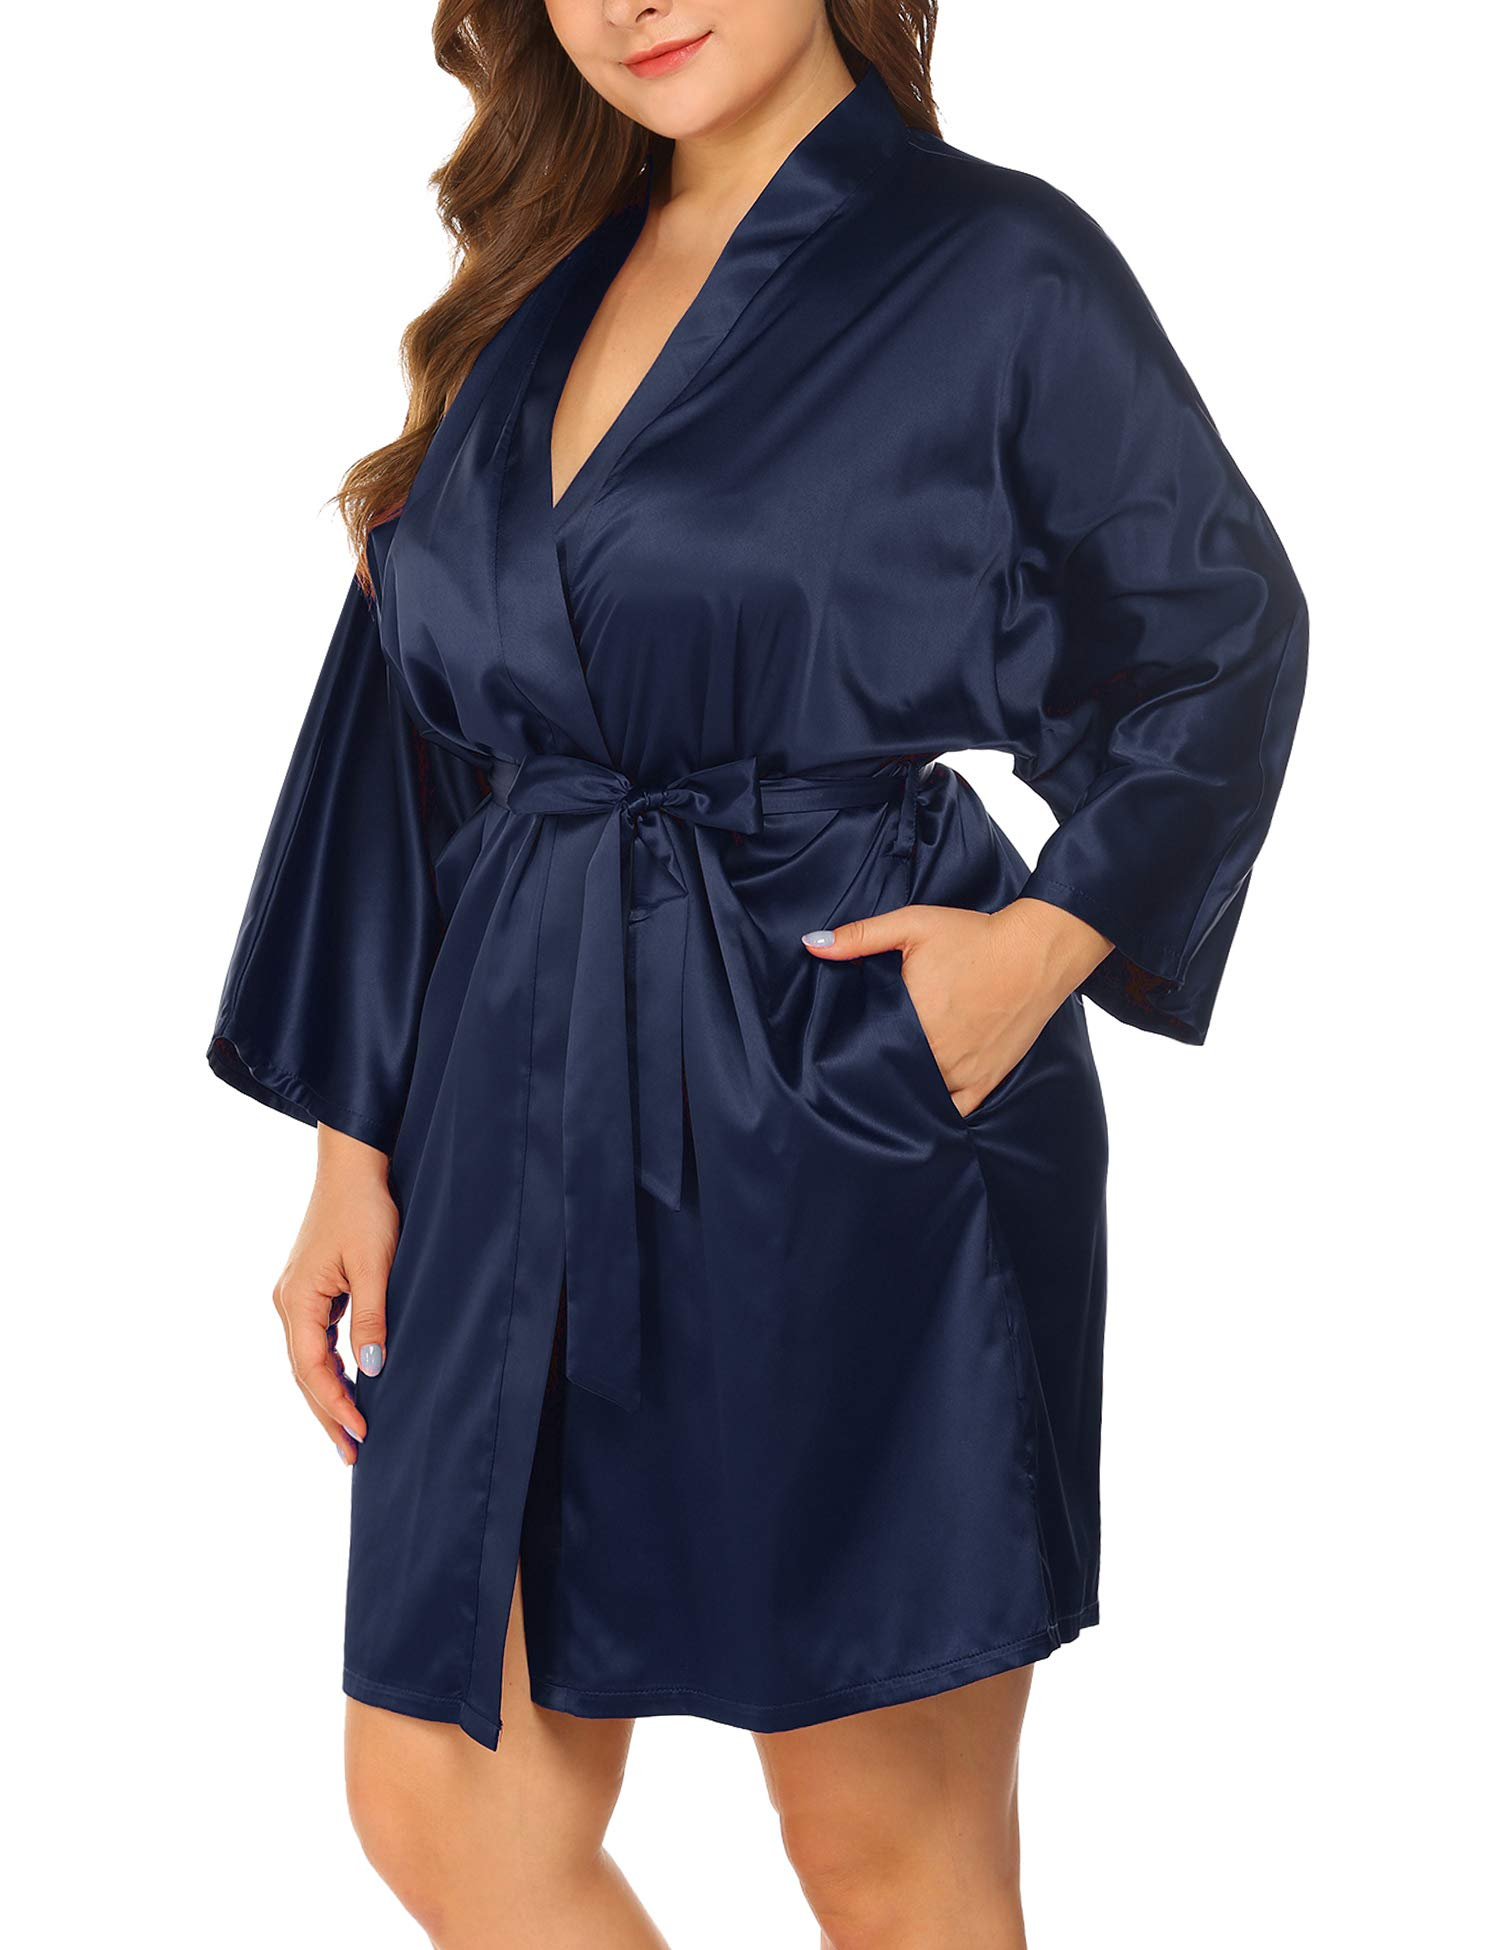 IN'VOLAND Women's Plus Size Robe Kimonos 3/4 Sleeve Satin Robes Silky Bathrobe Sleepwear with Pockets(1X-6X)